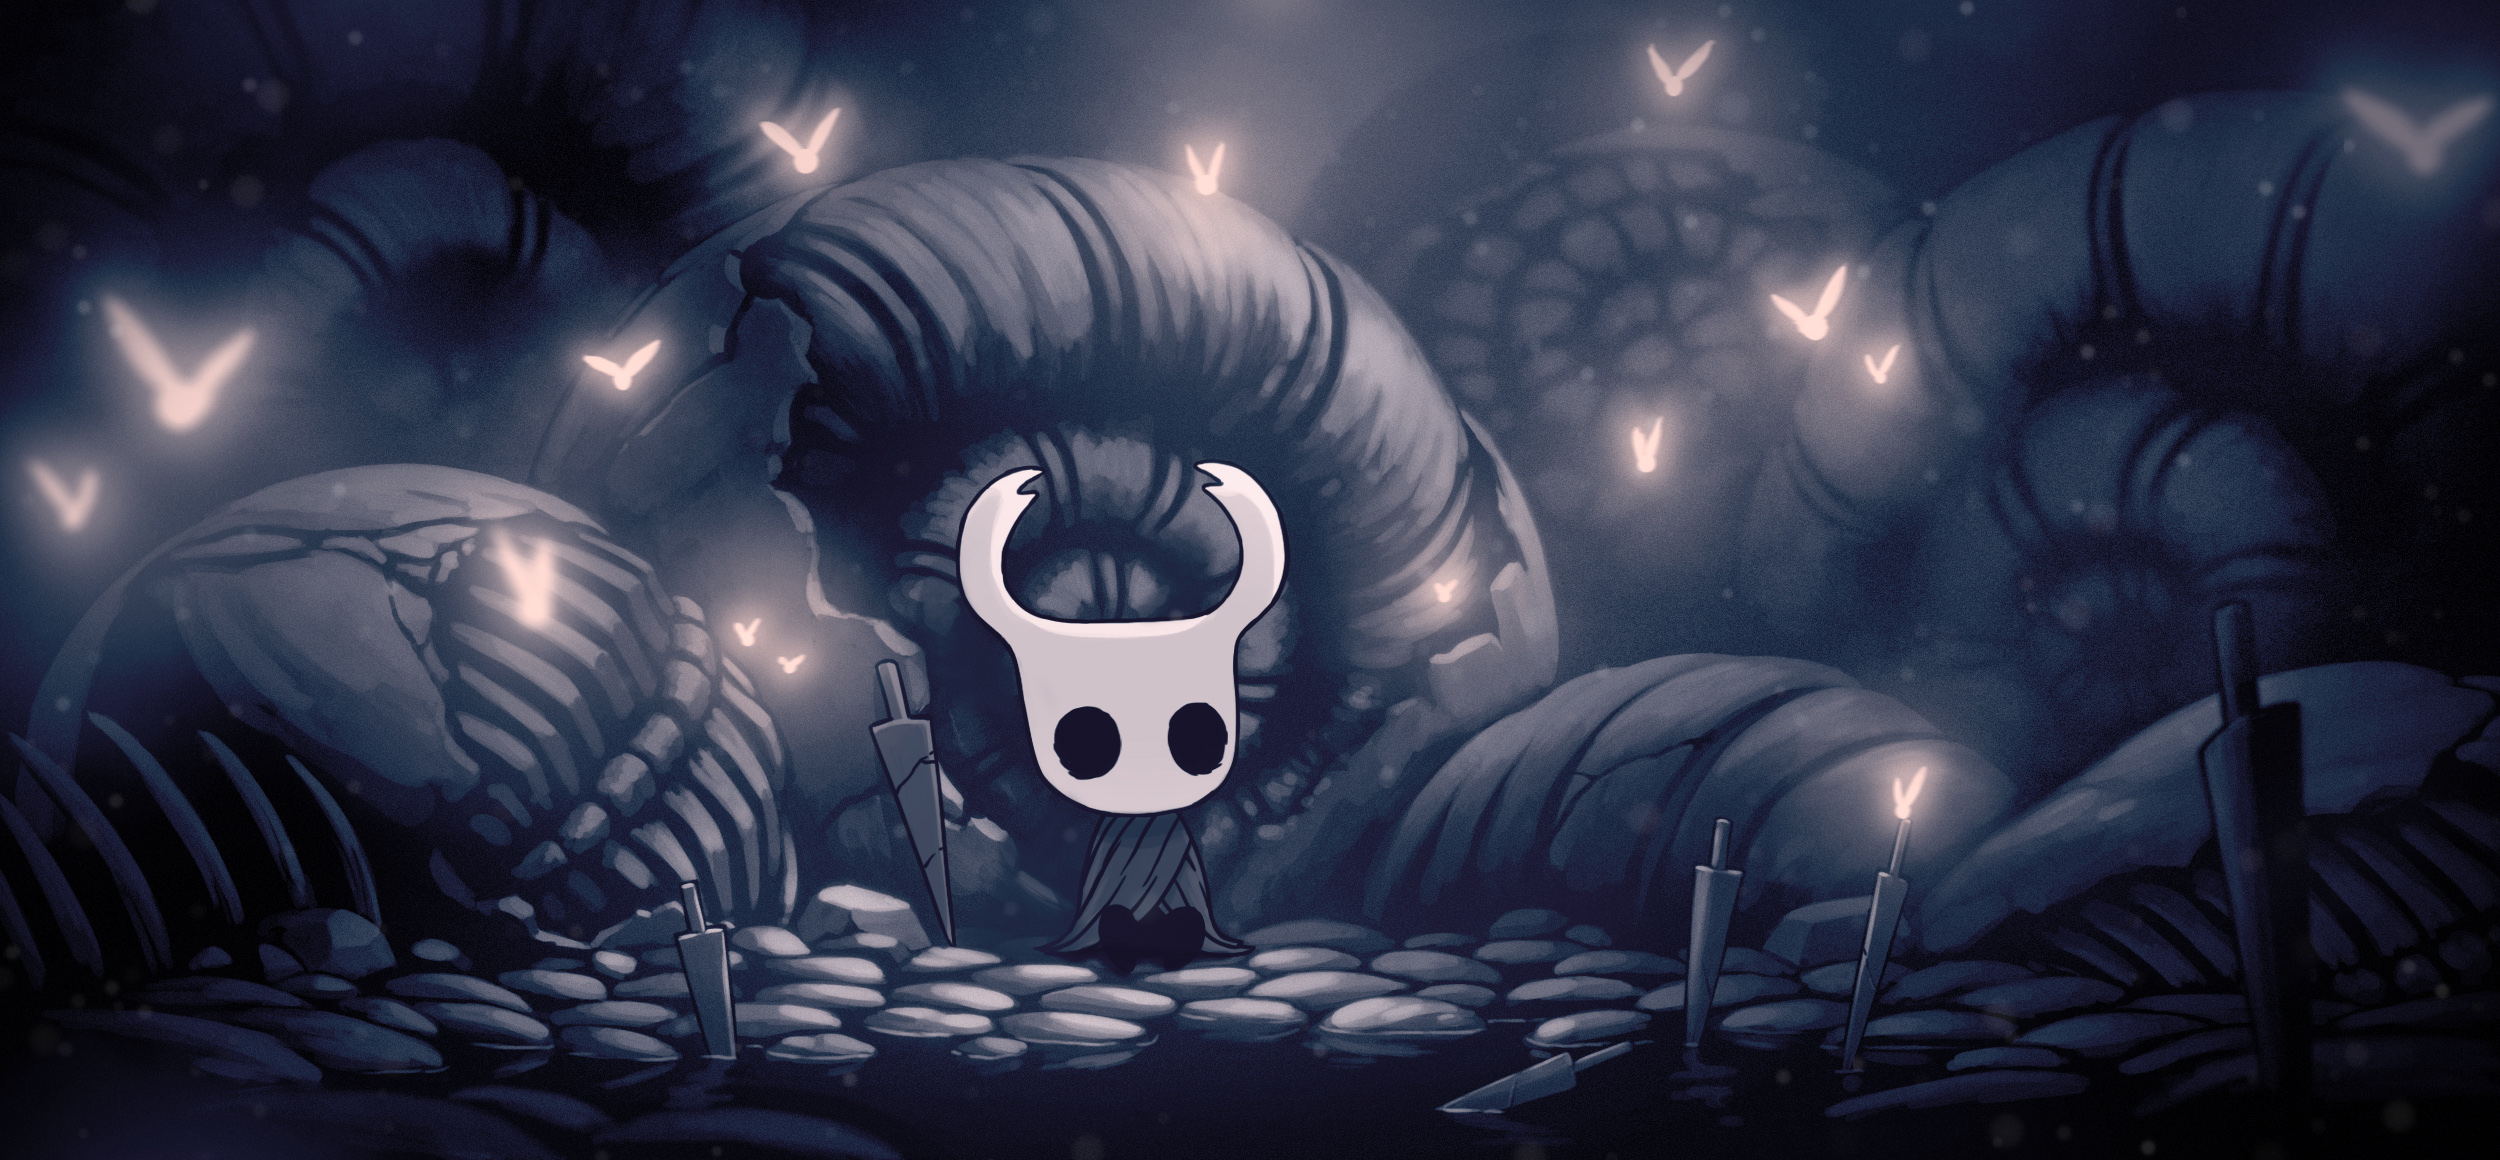 Why you shouldn't sleep on Hollow Knight, one of 2017's best games